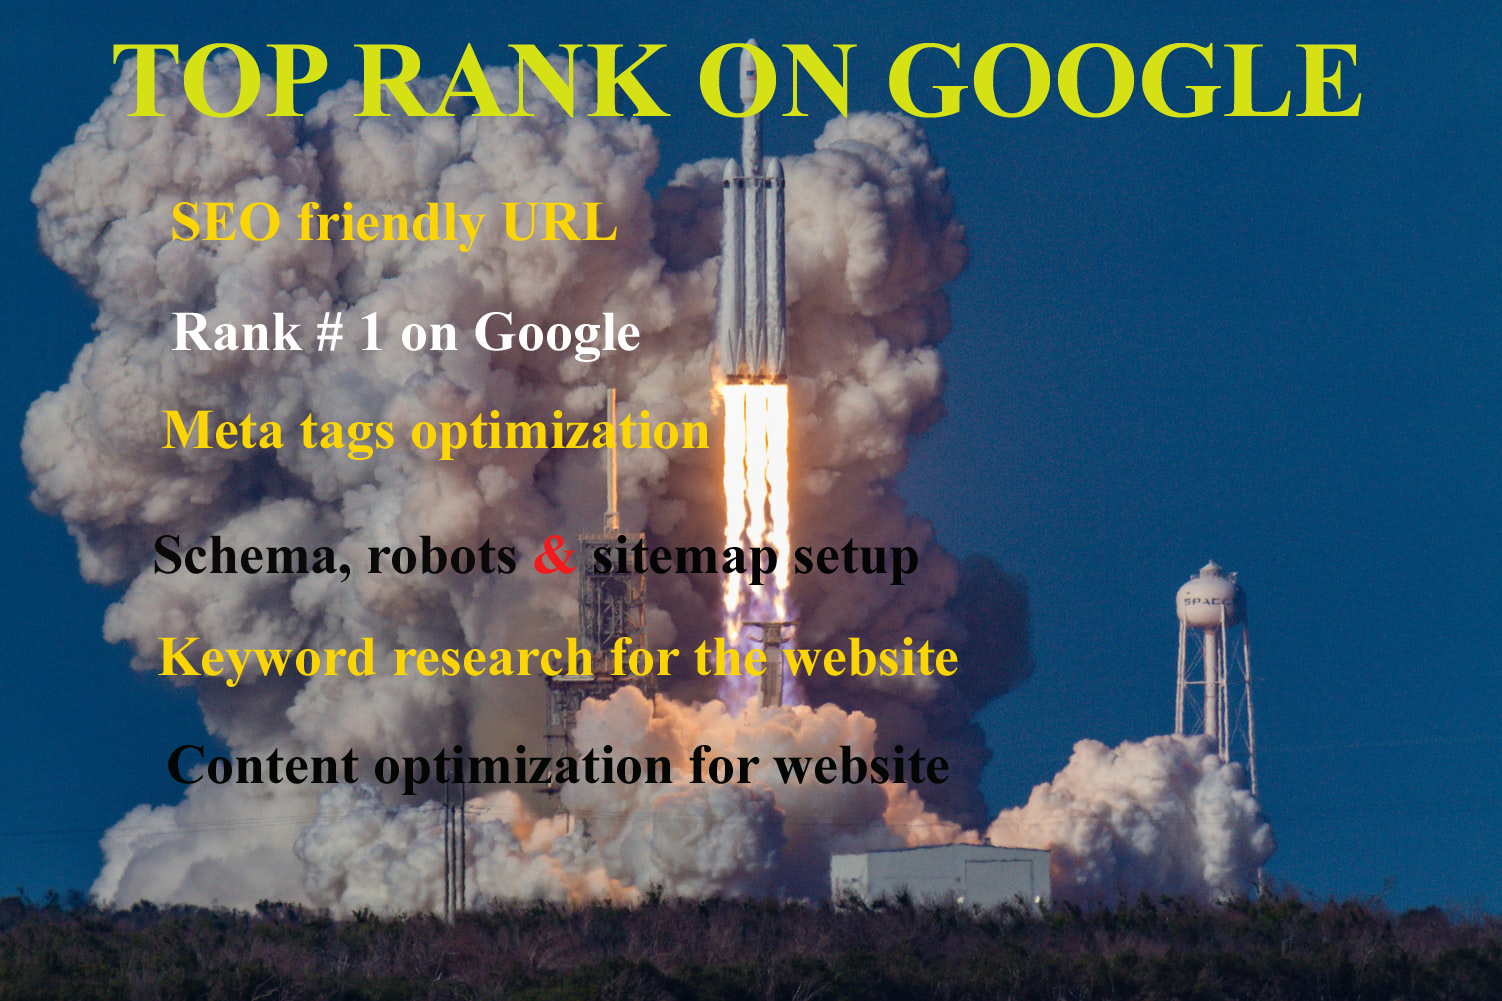 I will render SEO service to get top rank on google